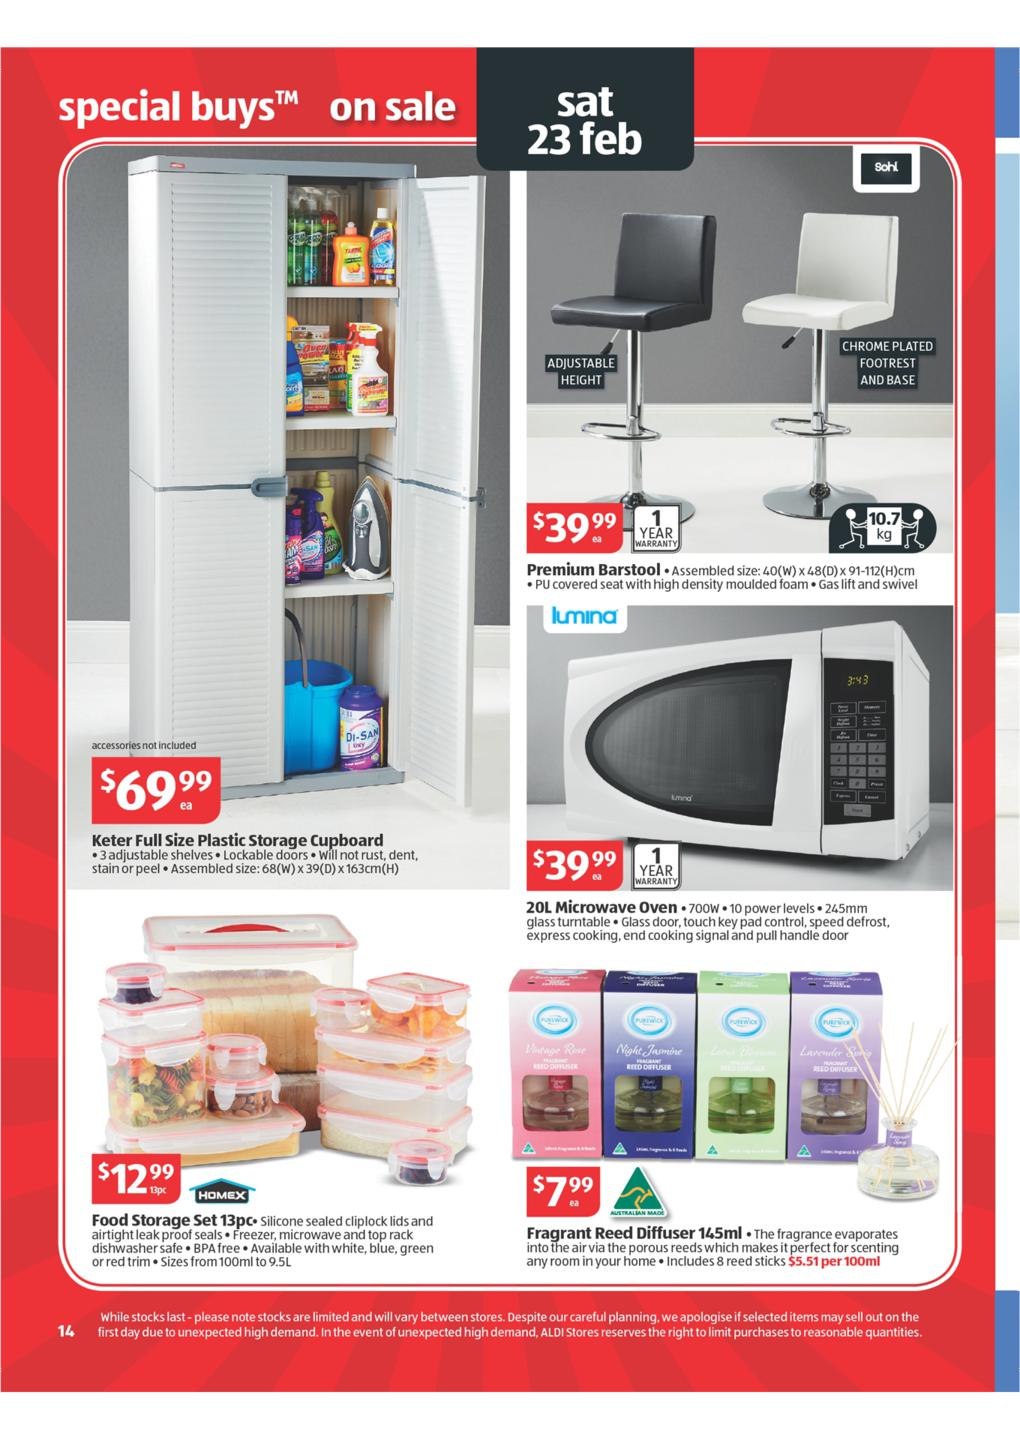 ALDI Catalogue - Special Buys Wk 8 2013 Page 14